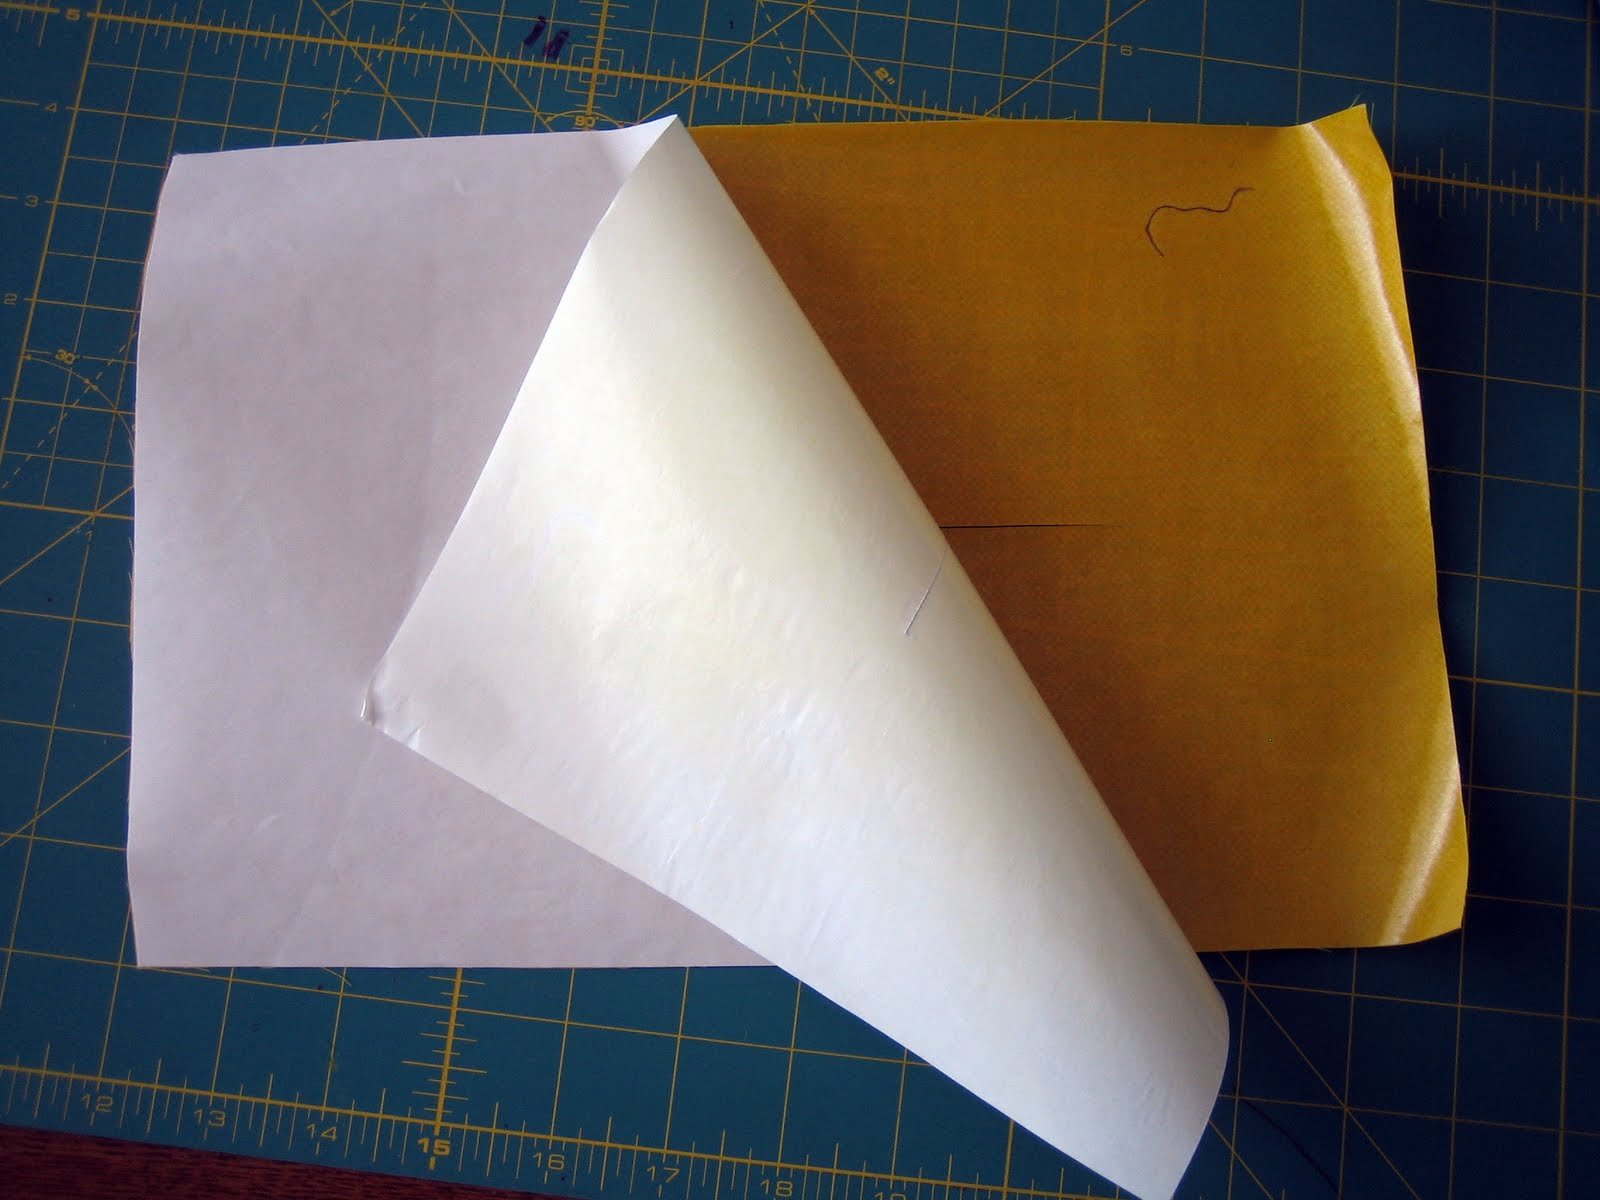 Fold fabric in half so that it is 4 12 by 12 1600x1200